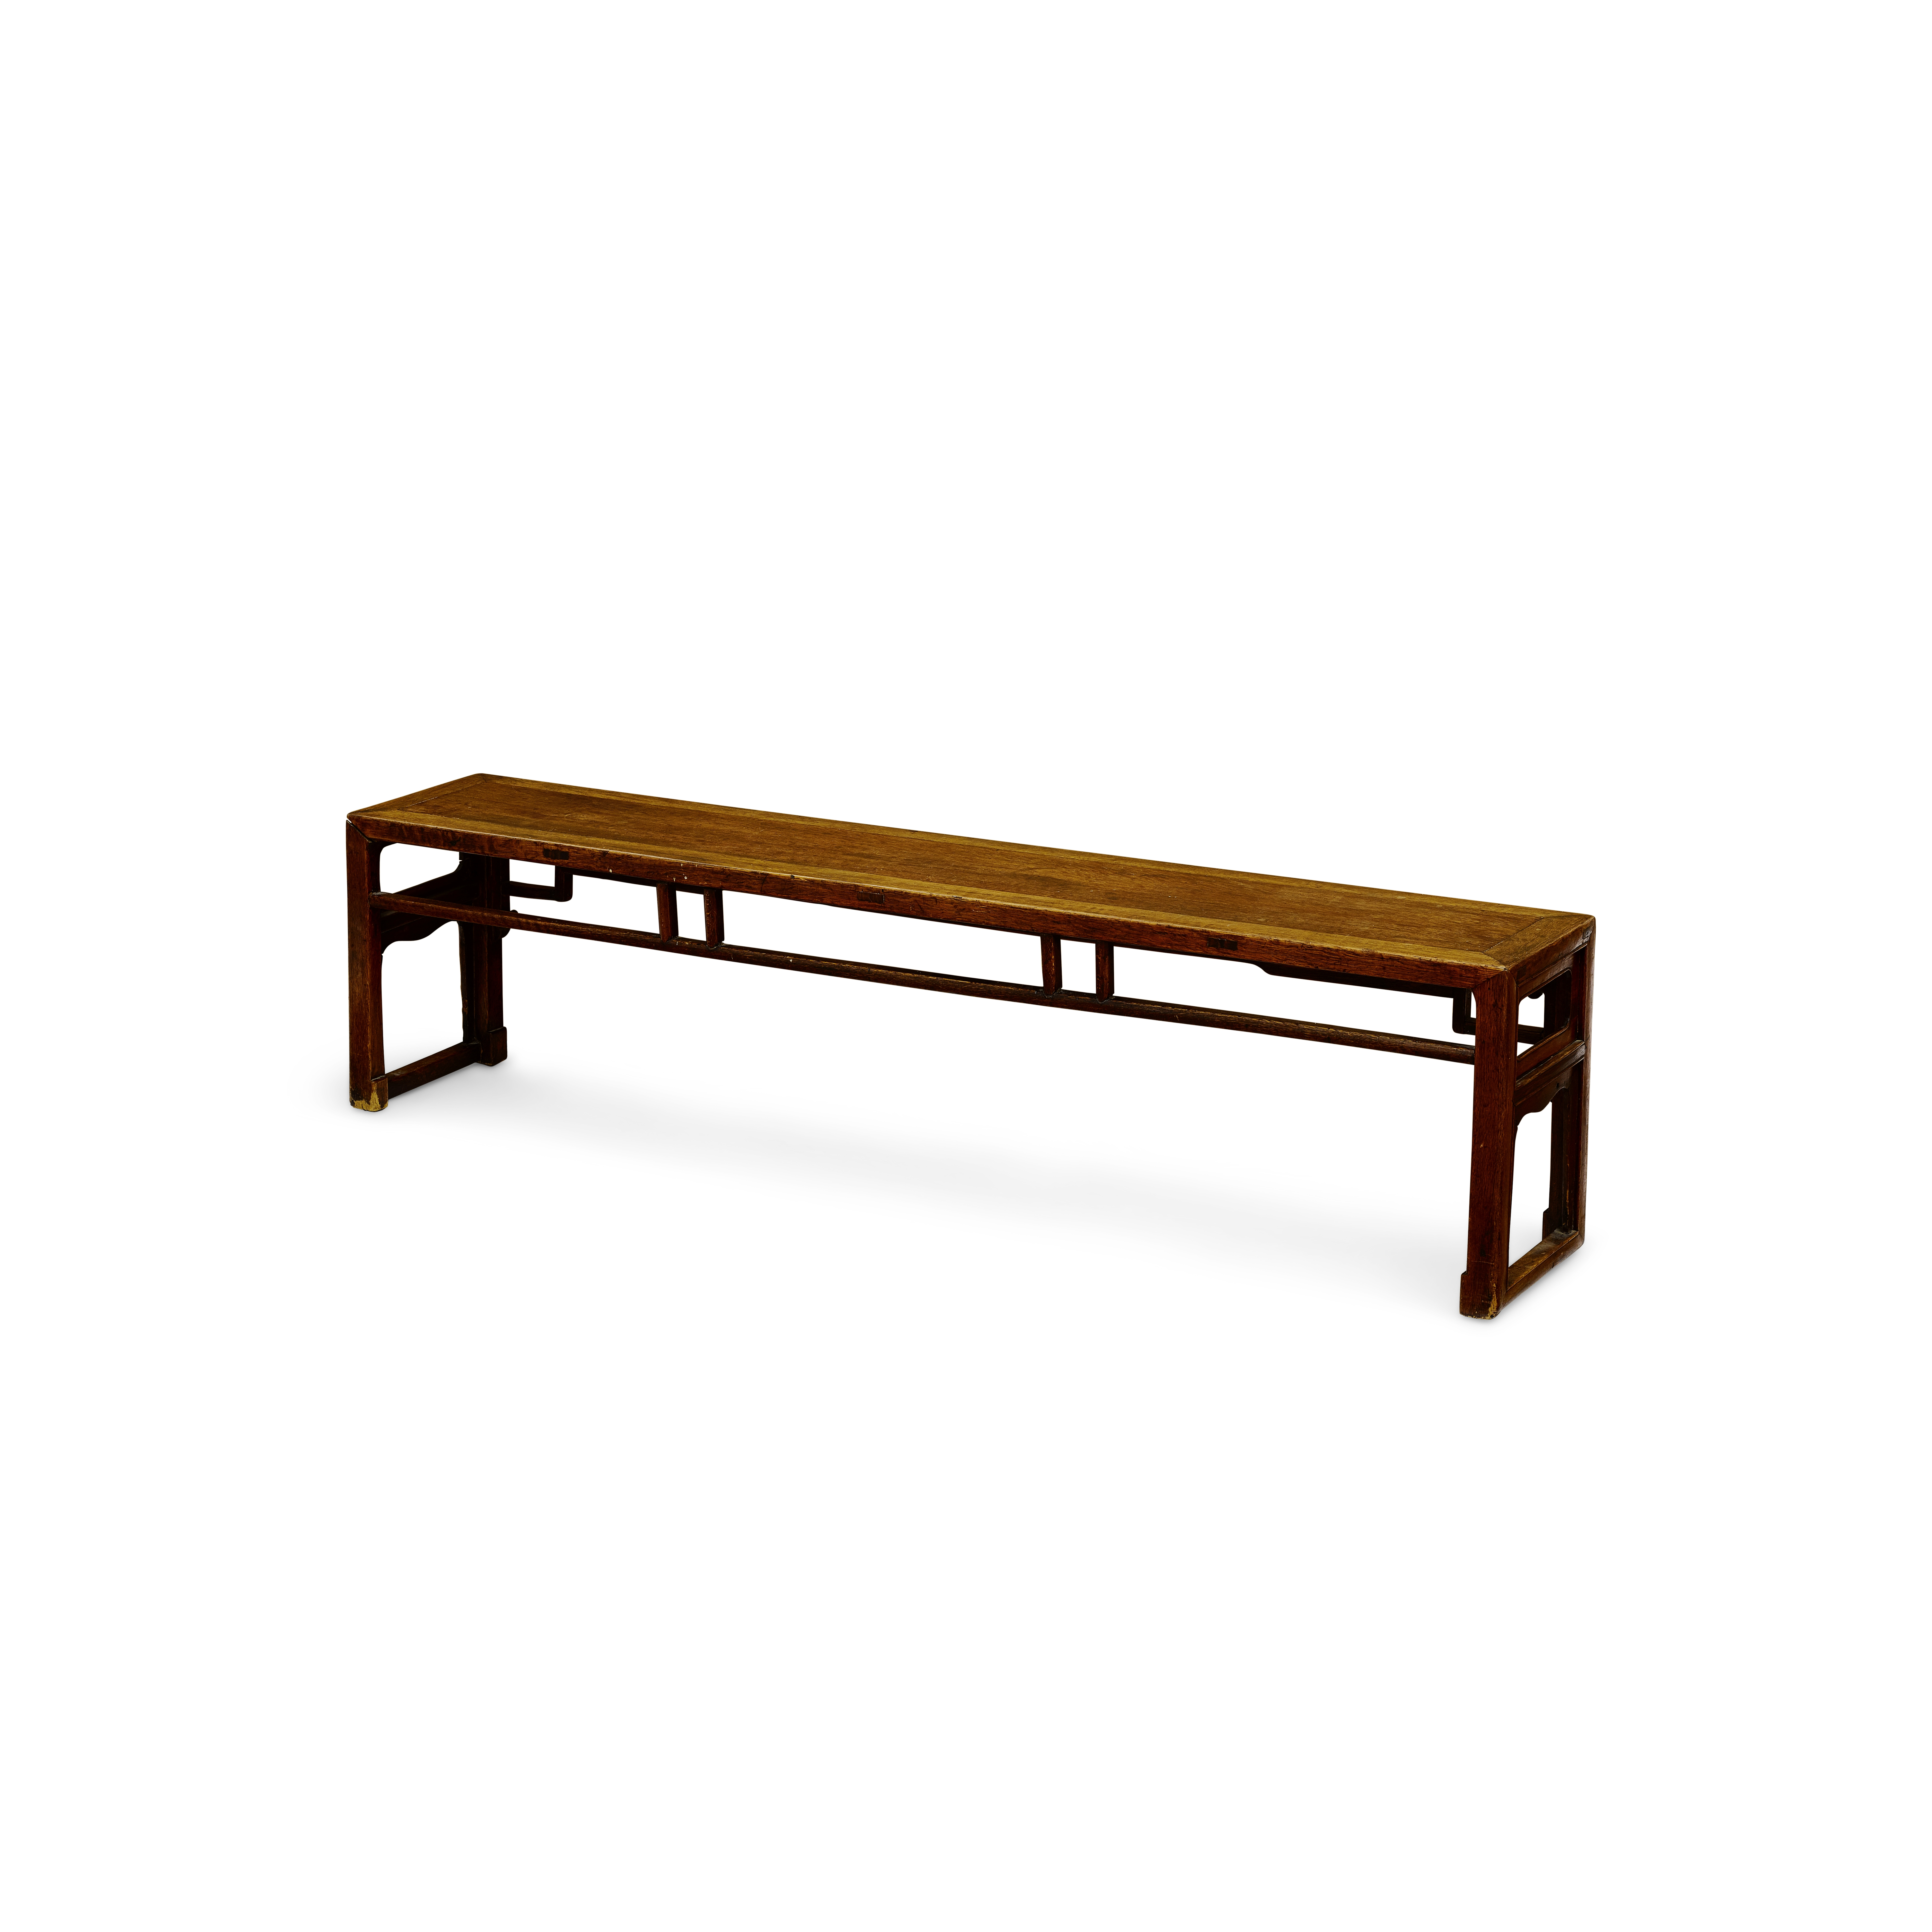 Lot 252 - A Chinese huali low bench Qing dynasty, 19th century